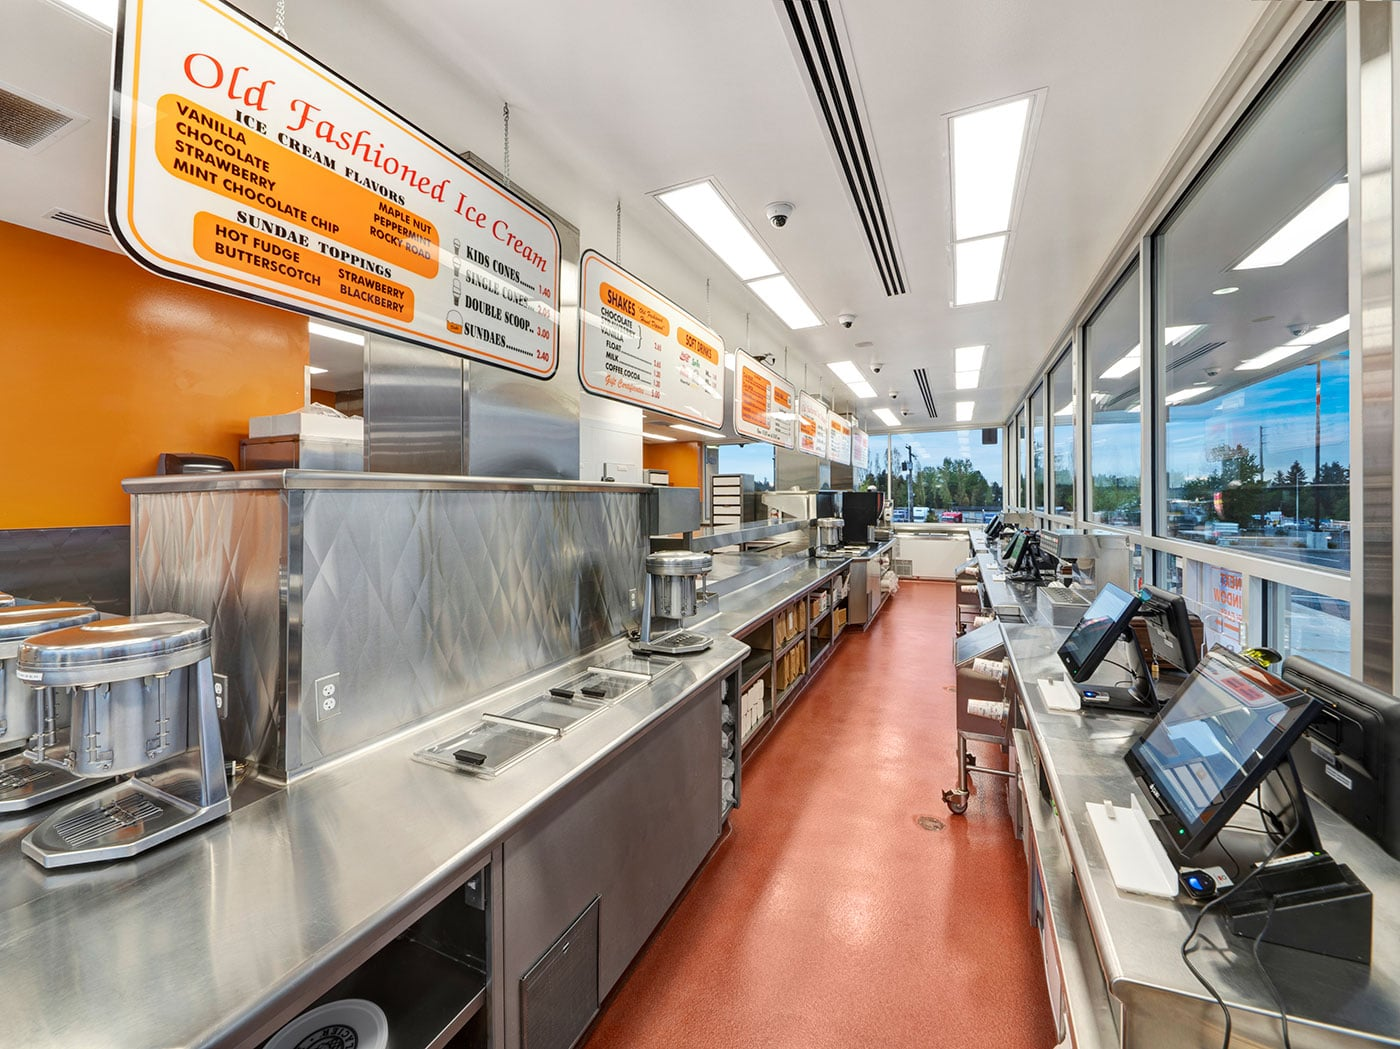 Interior of cooking, prep and serving area of Dick's Drive-in